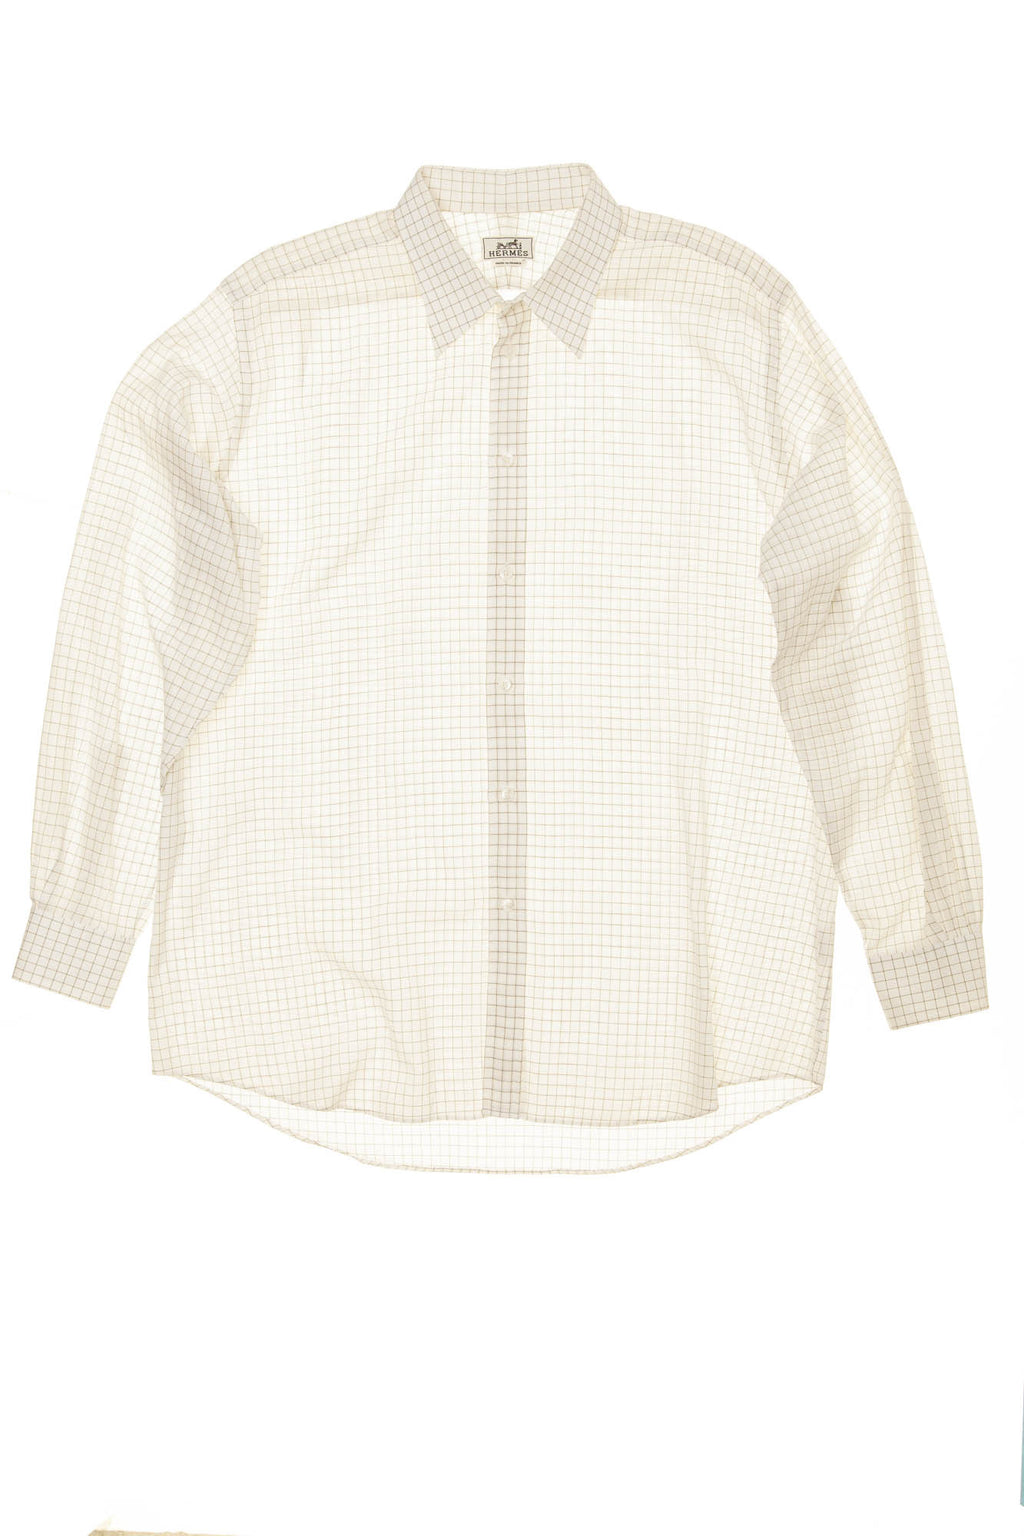 Hermes - White Collared Checkered Men's Button Up Dress Shirt - IT 44